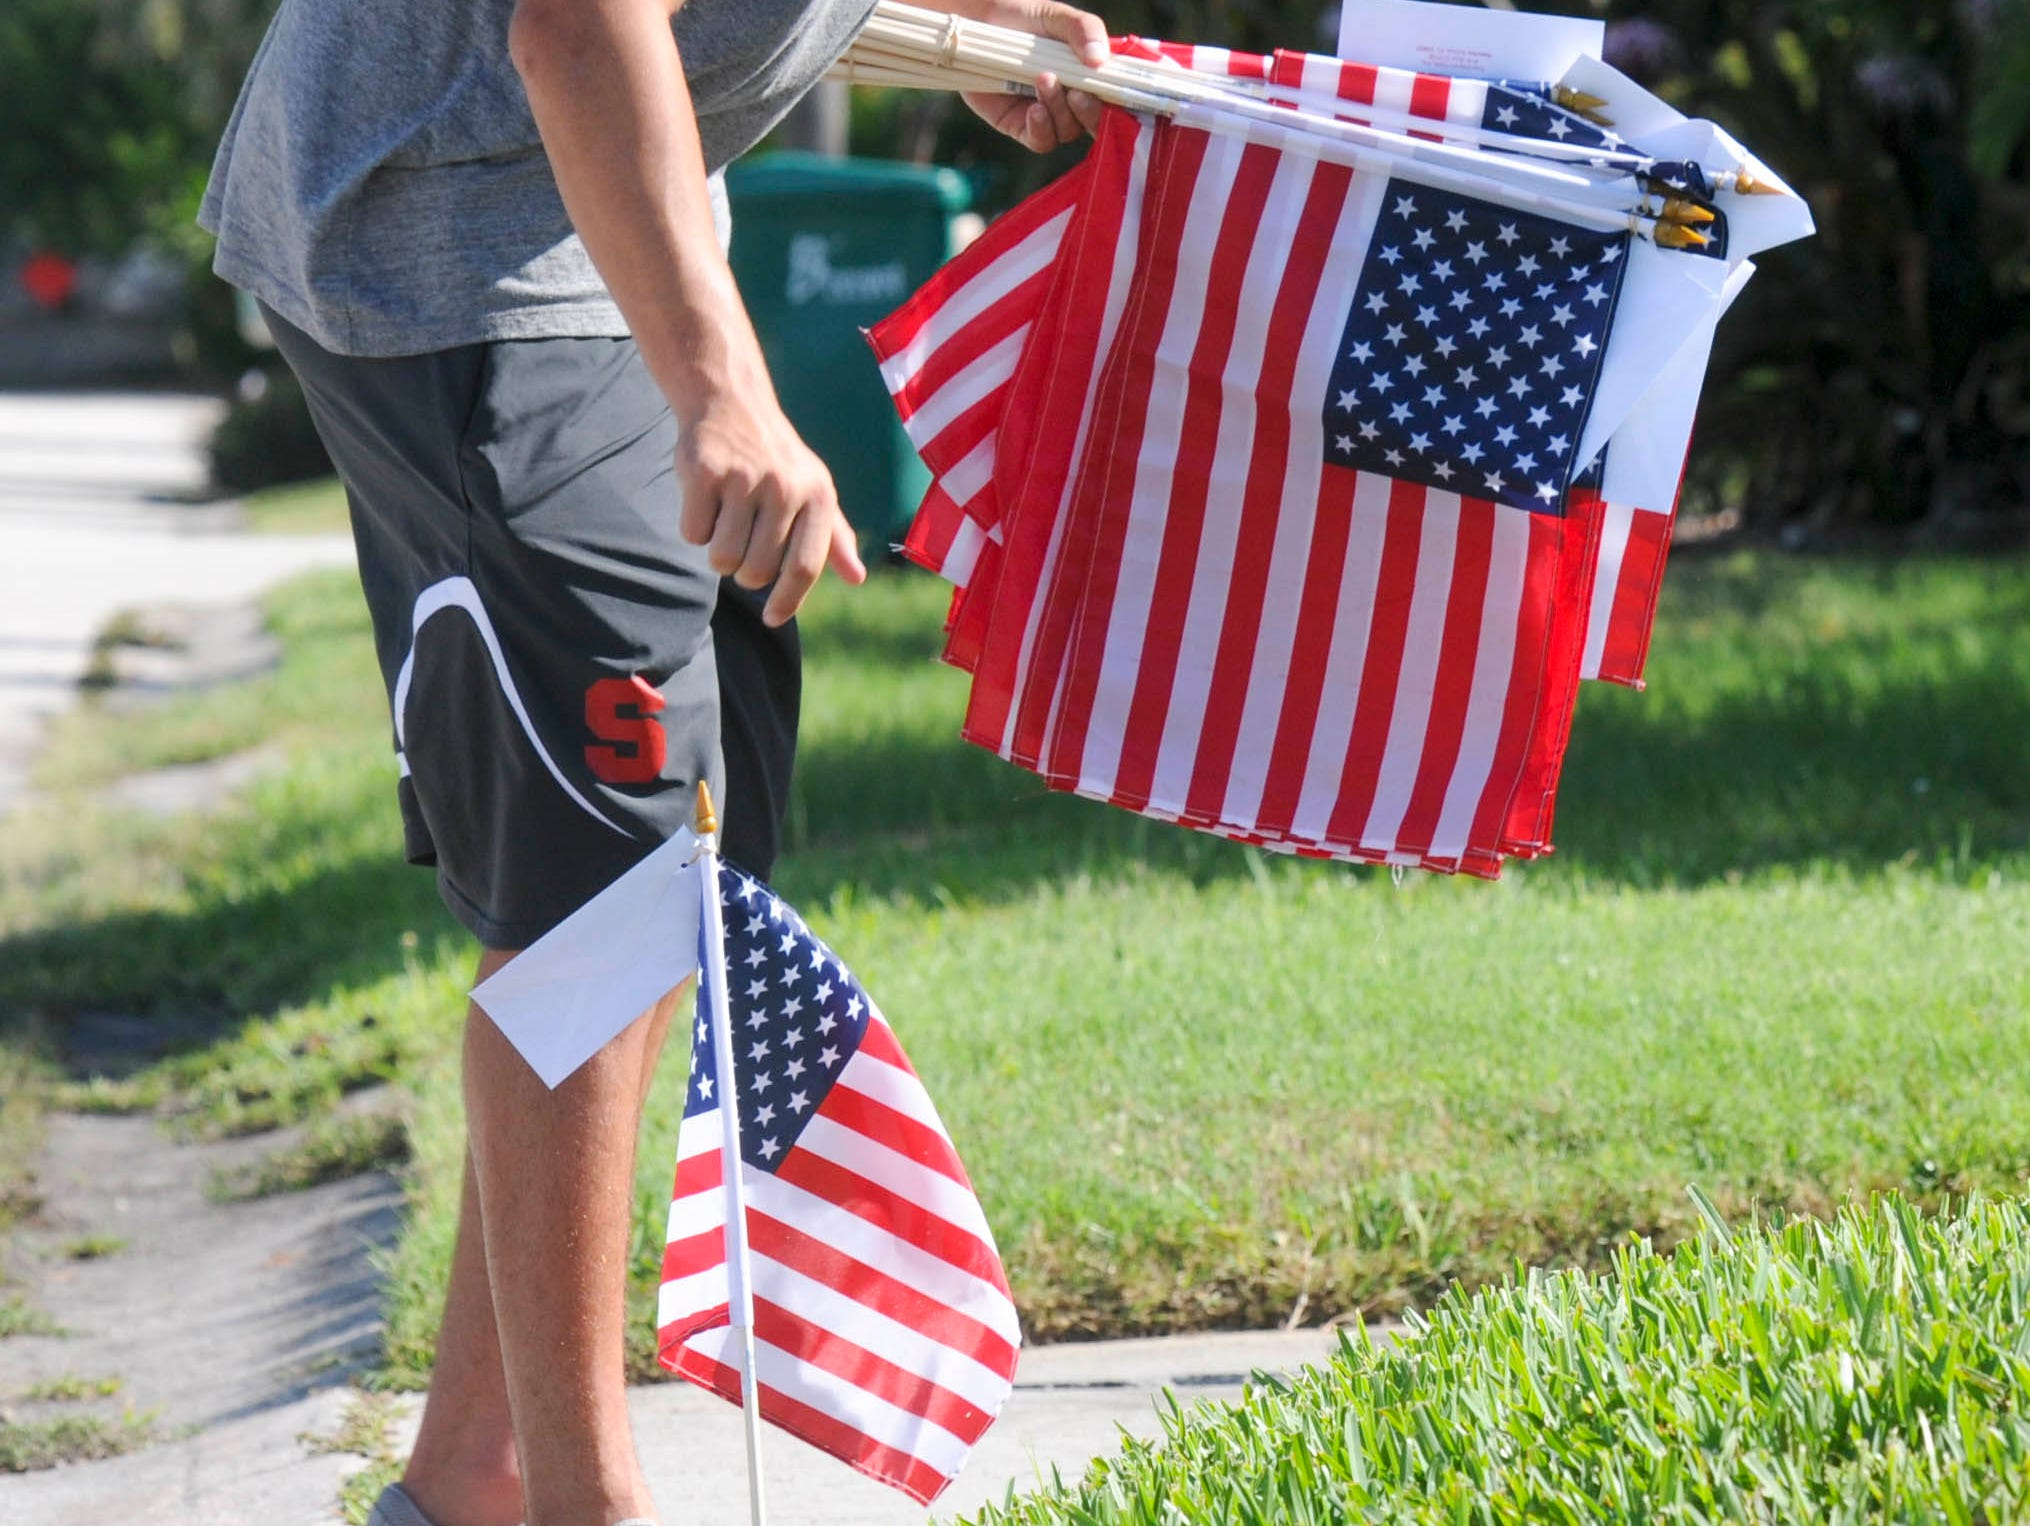 Cameron Saydo helps set out American flags Thursday morning in Satellite Beach. Students from Satellite High's football and ROTC squads help distribute American flags as part of a fundraiser for the school.